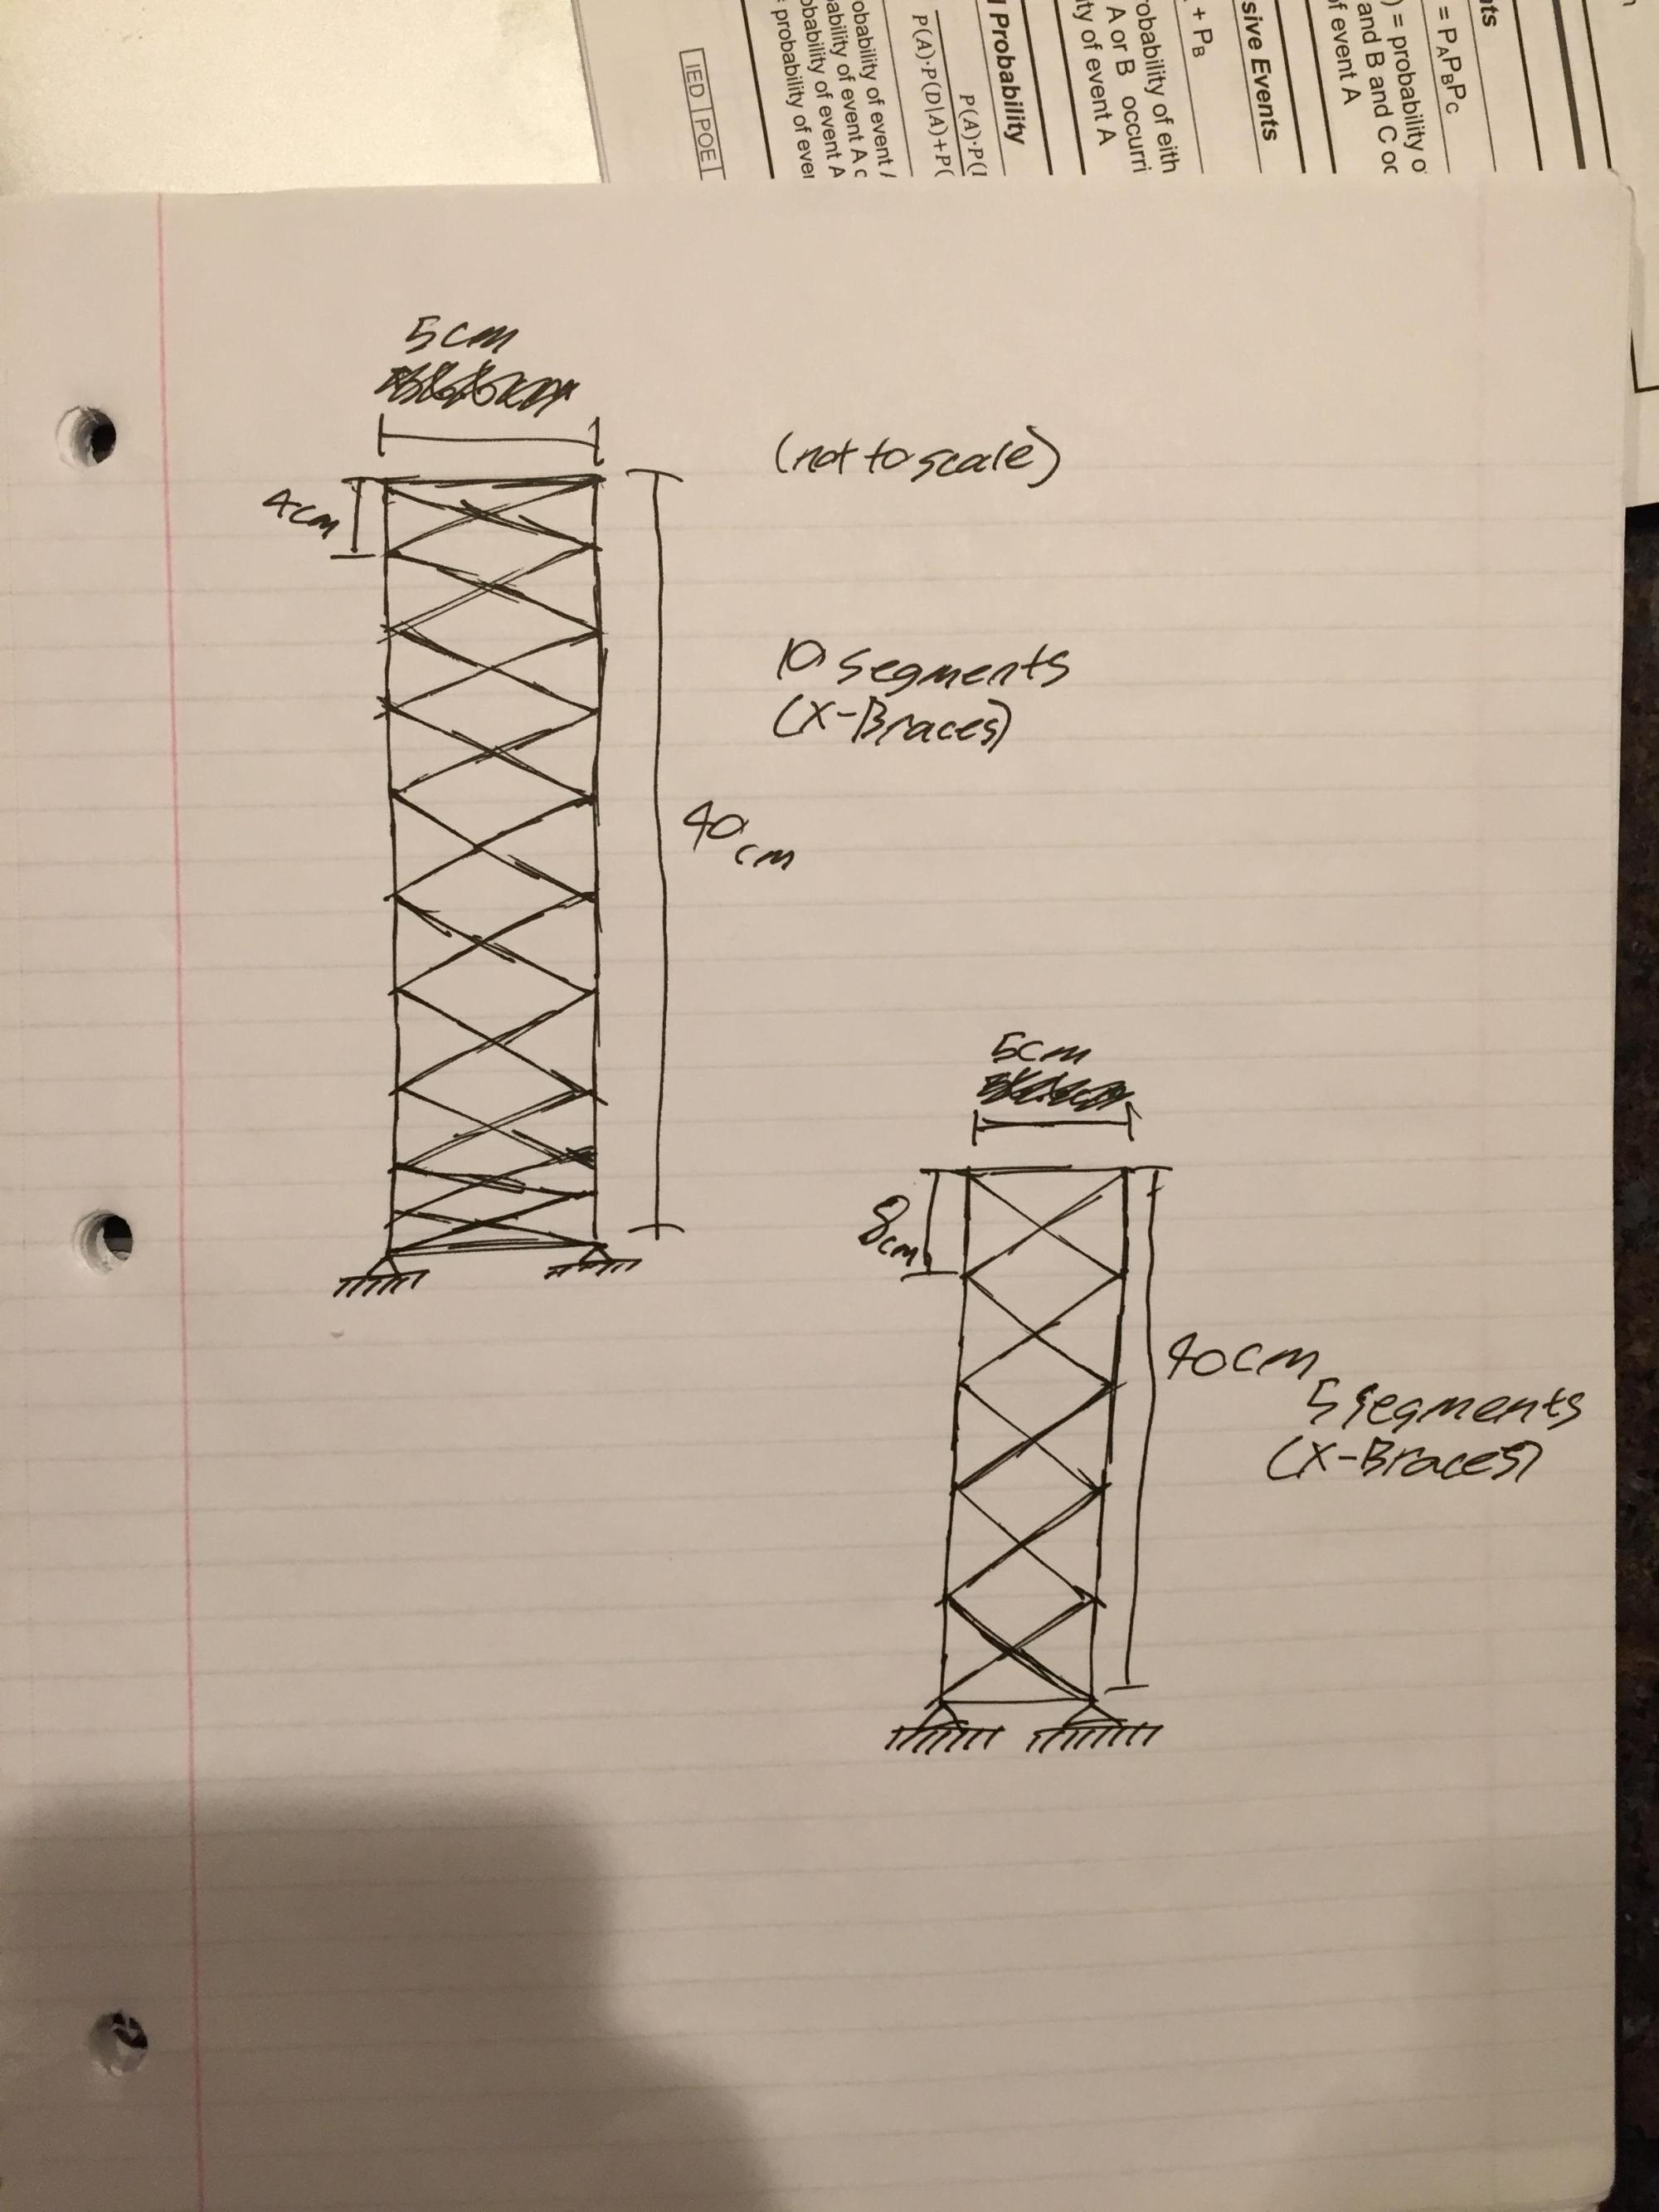 hight resolution of how does the number of braces in a balsa wood tower affect the load capacity